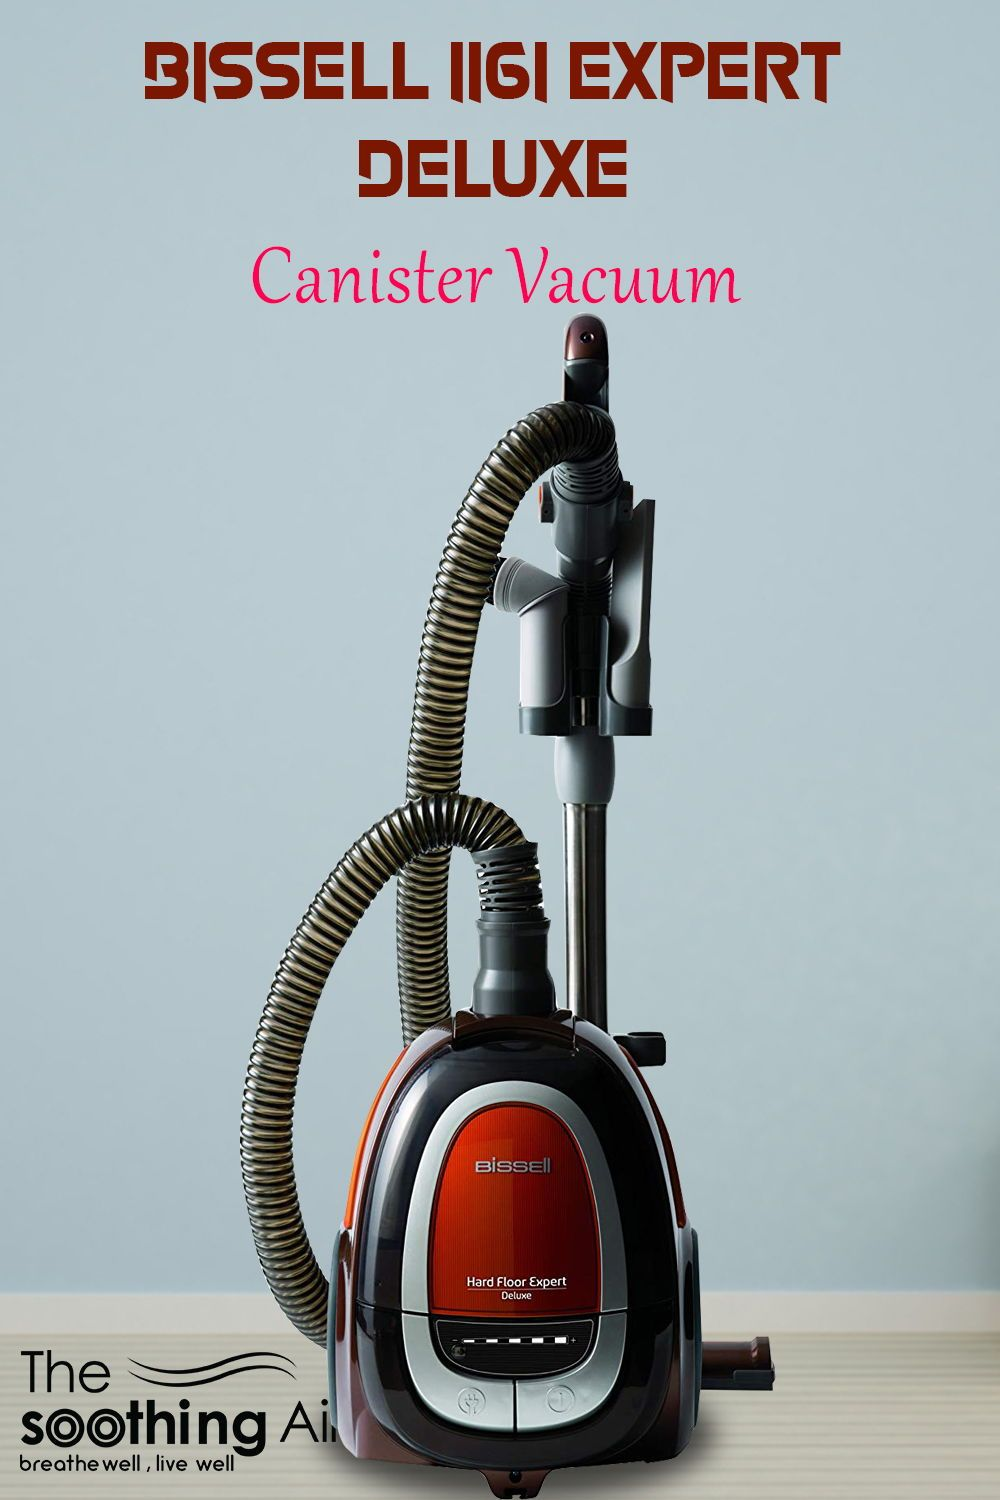 Best Budget Vacuum 2019 Top 10 Canister Vacuums (June 2019): Reviews & Buyers Guide in